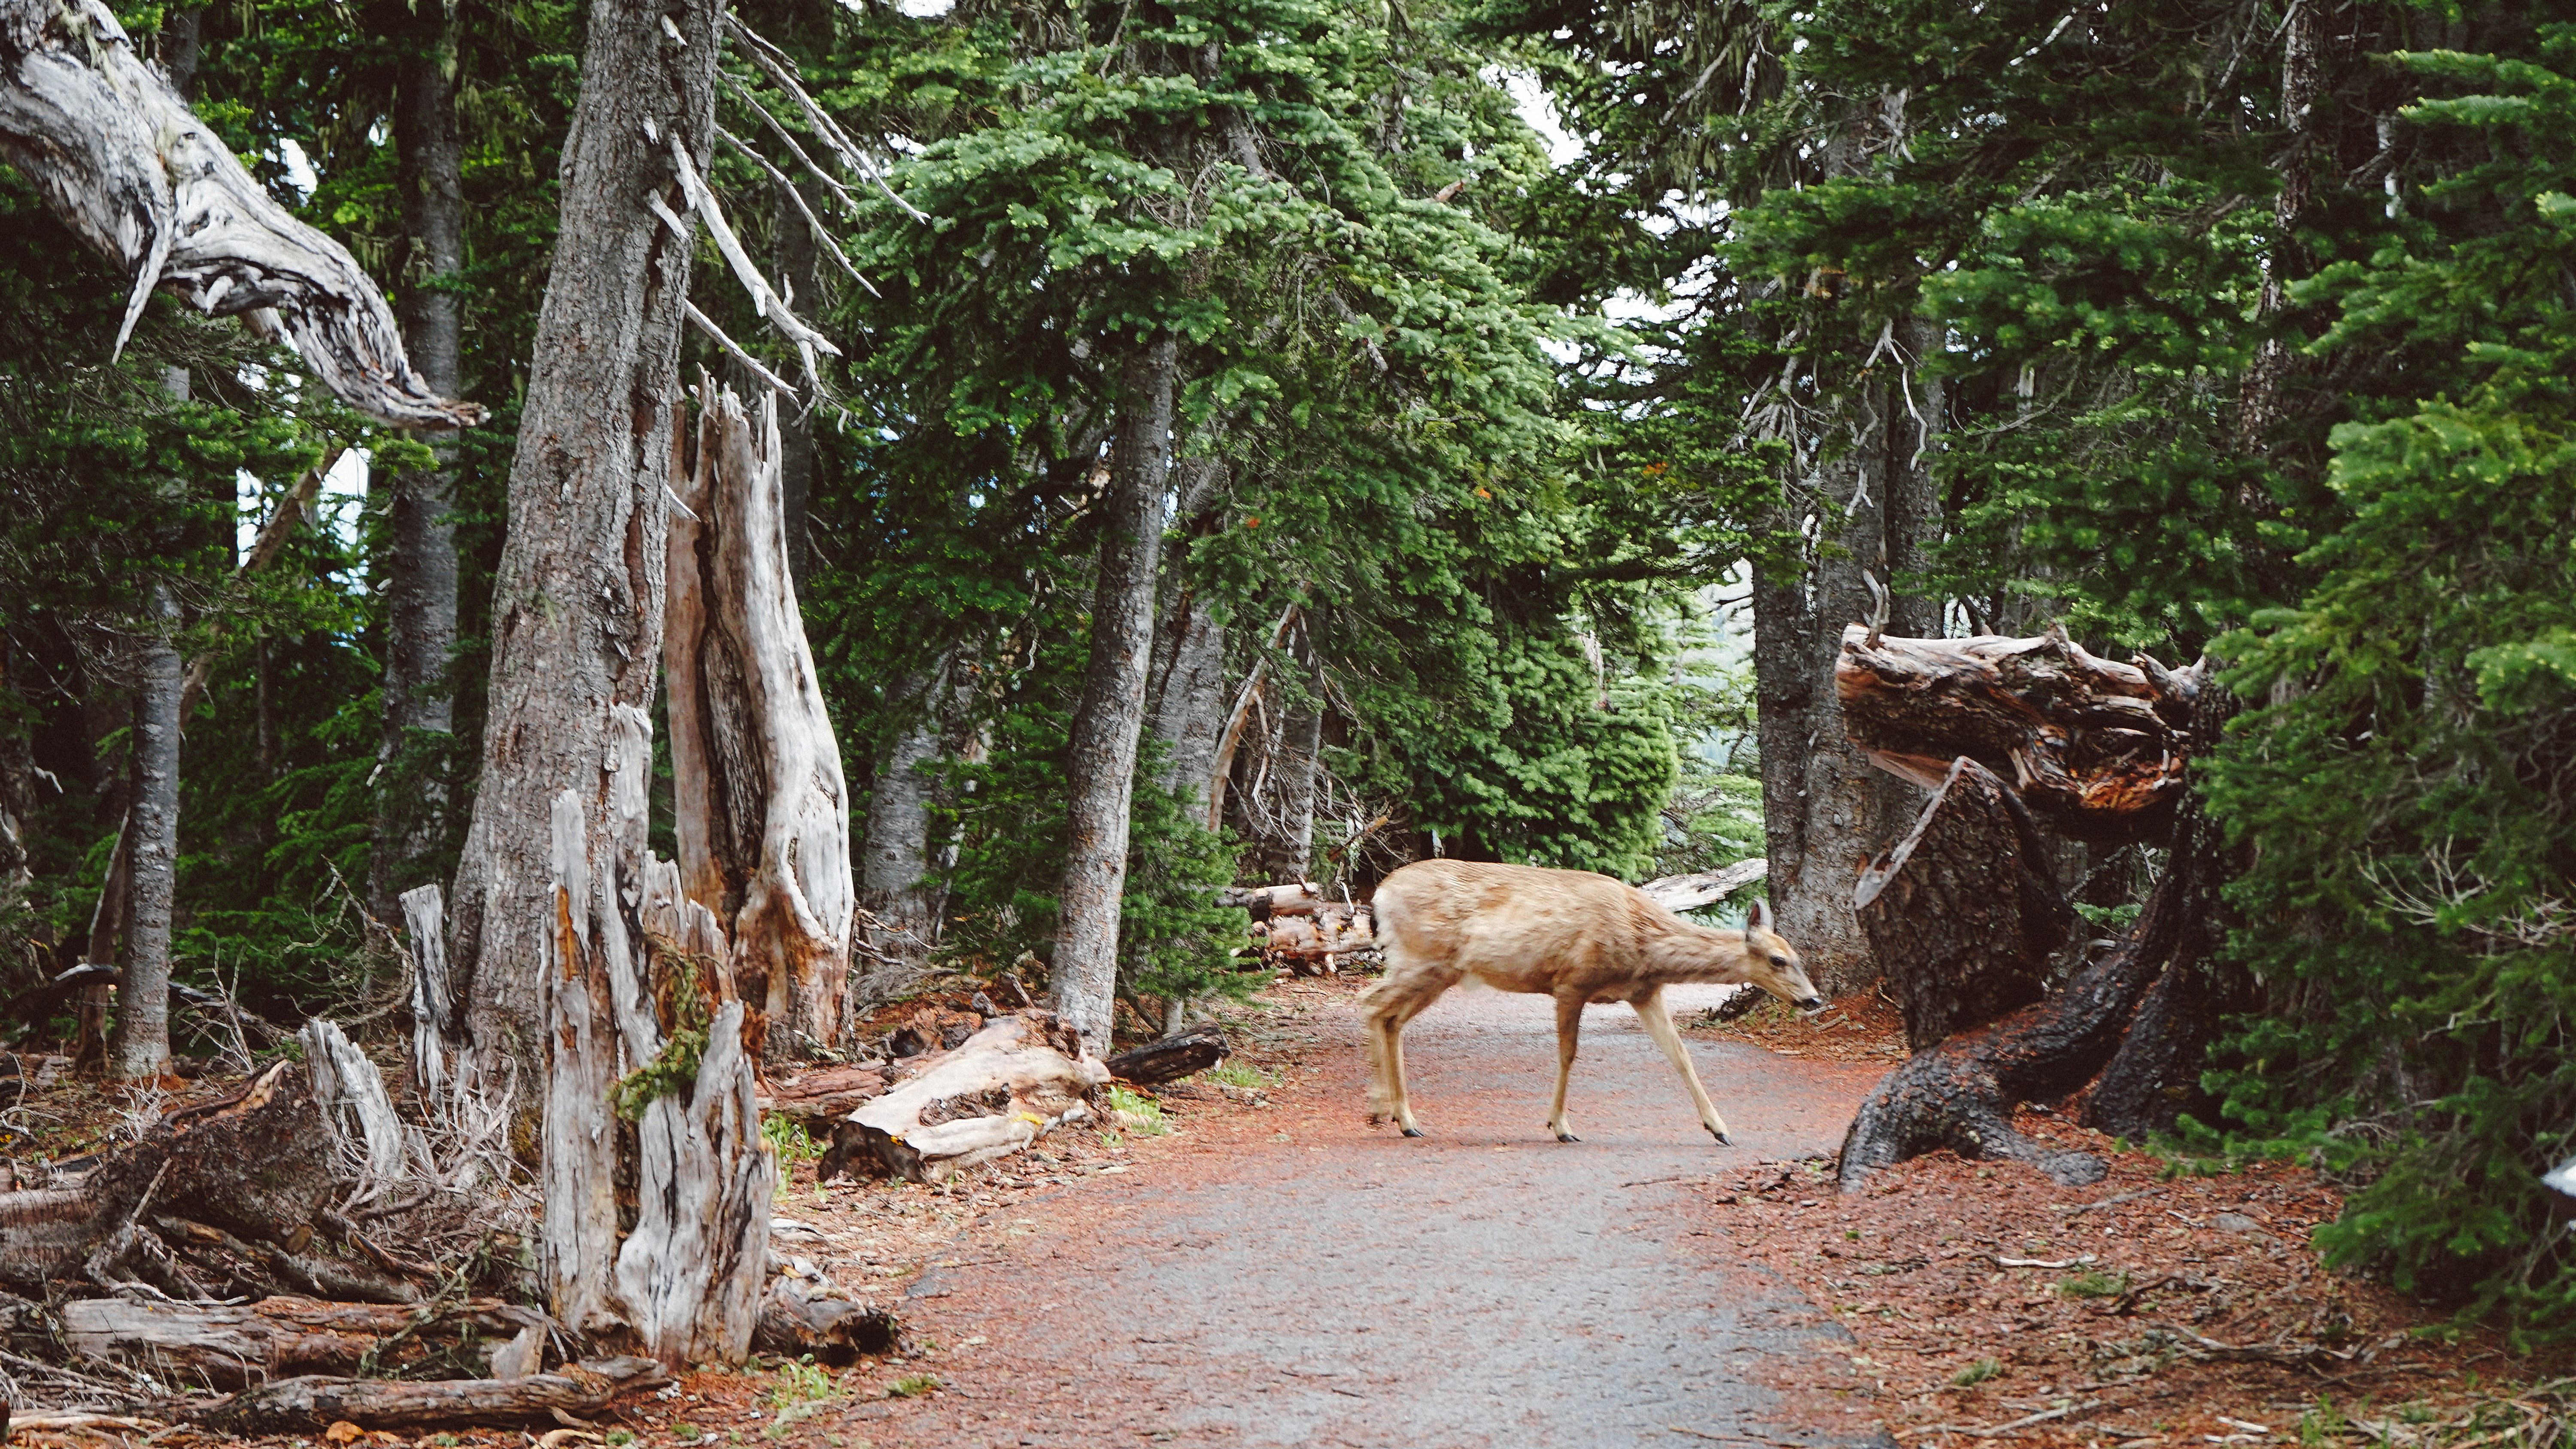 A deer near several dead trees on a forest path